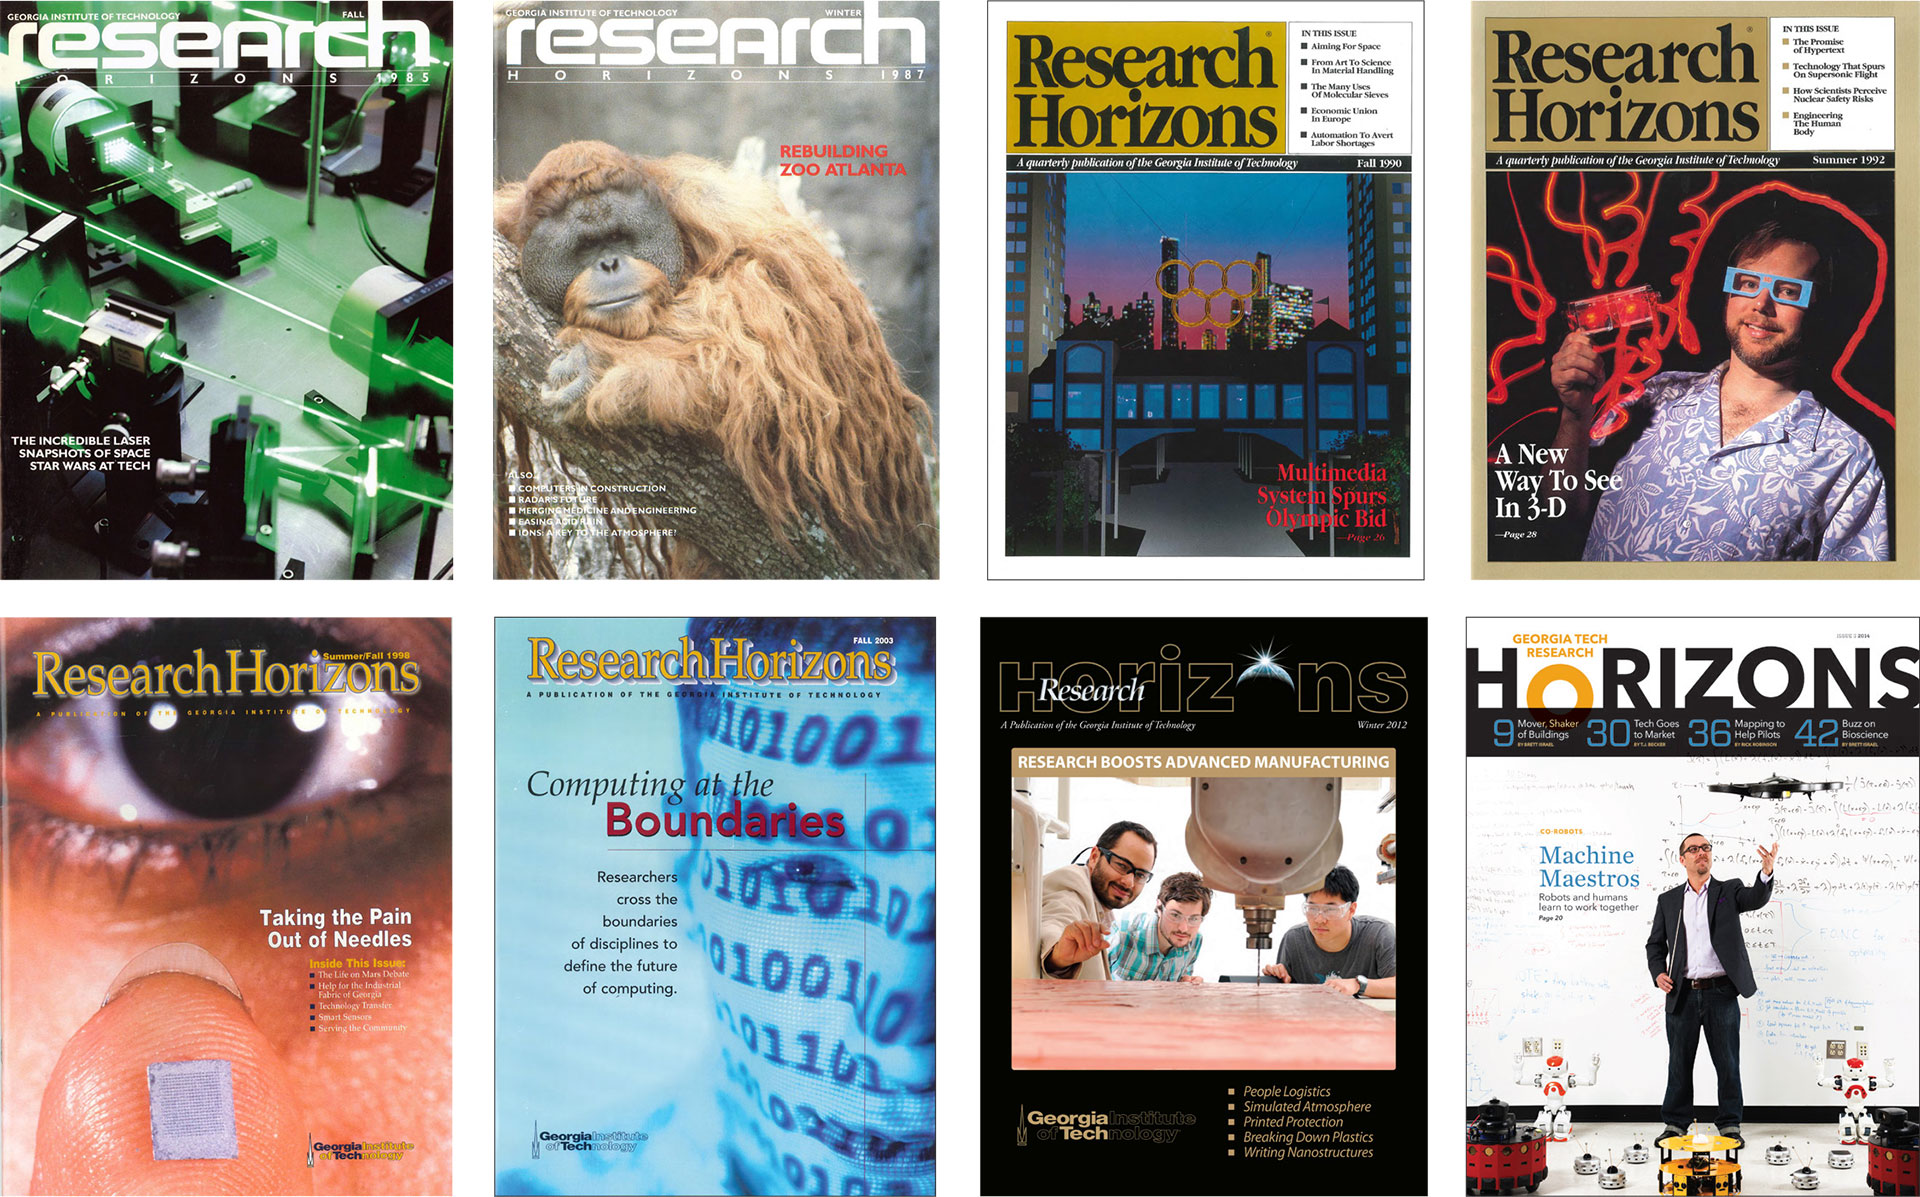 Issues of Research Horizons magazine through the years